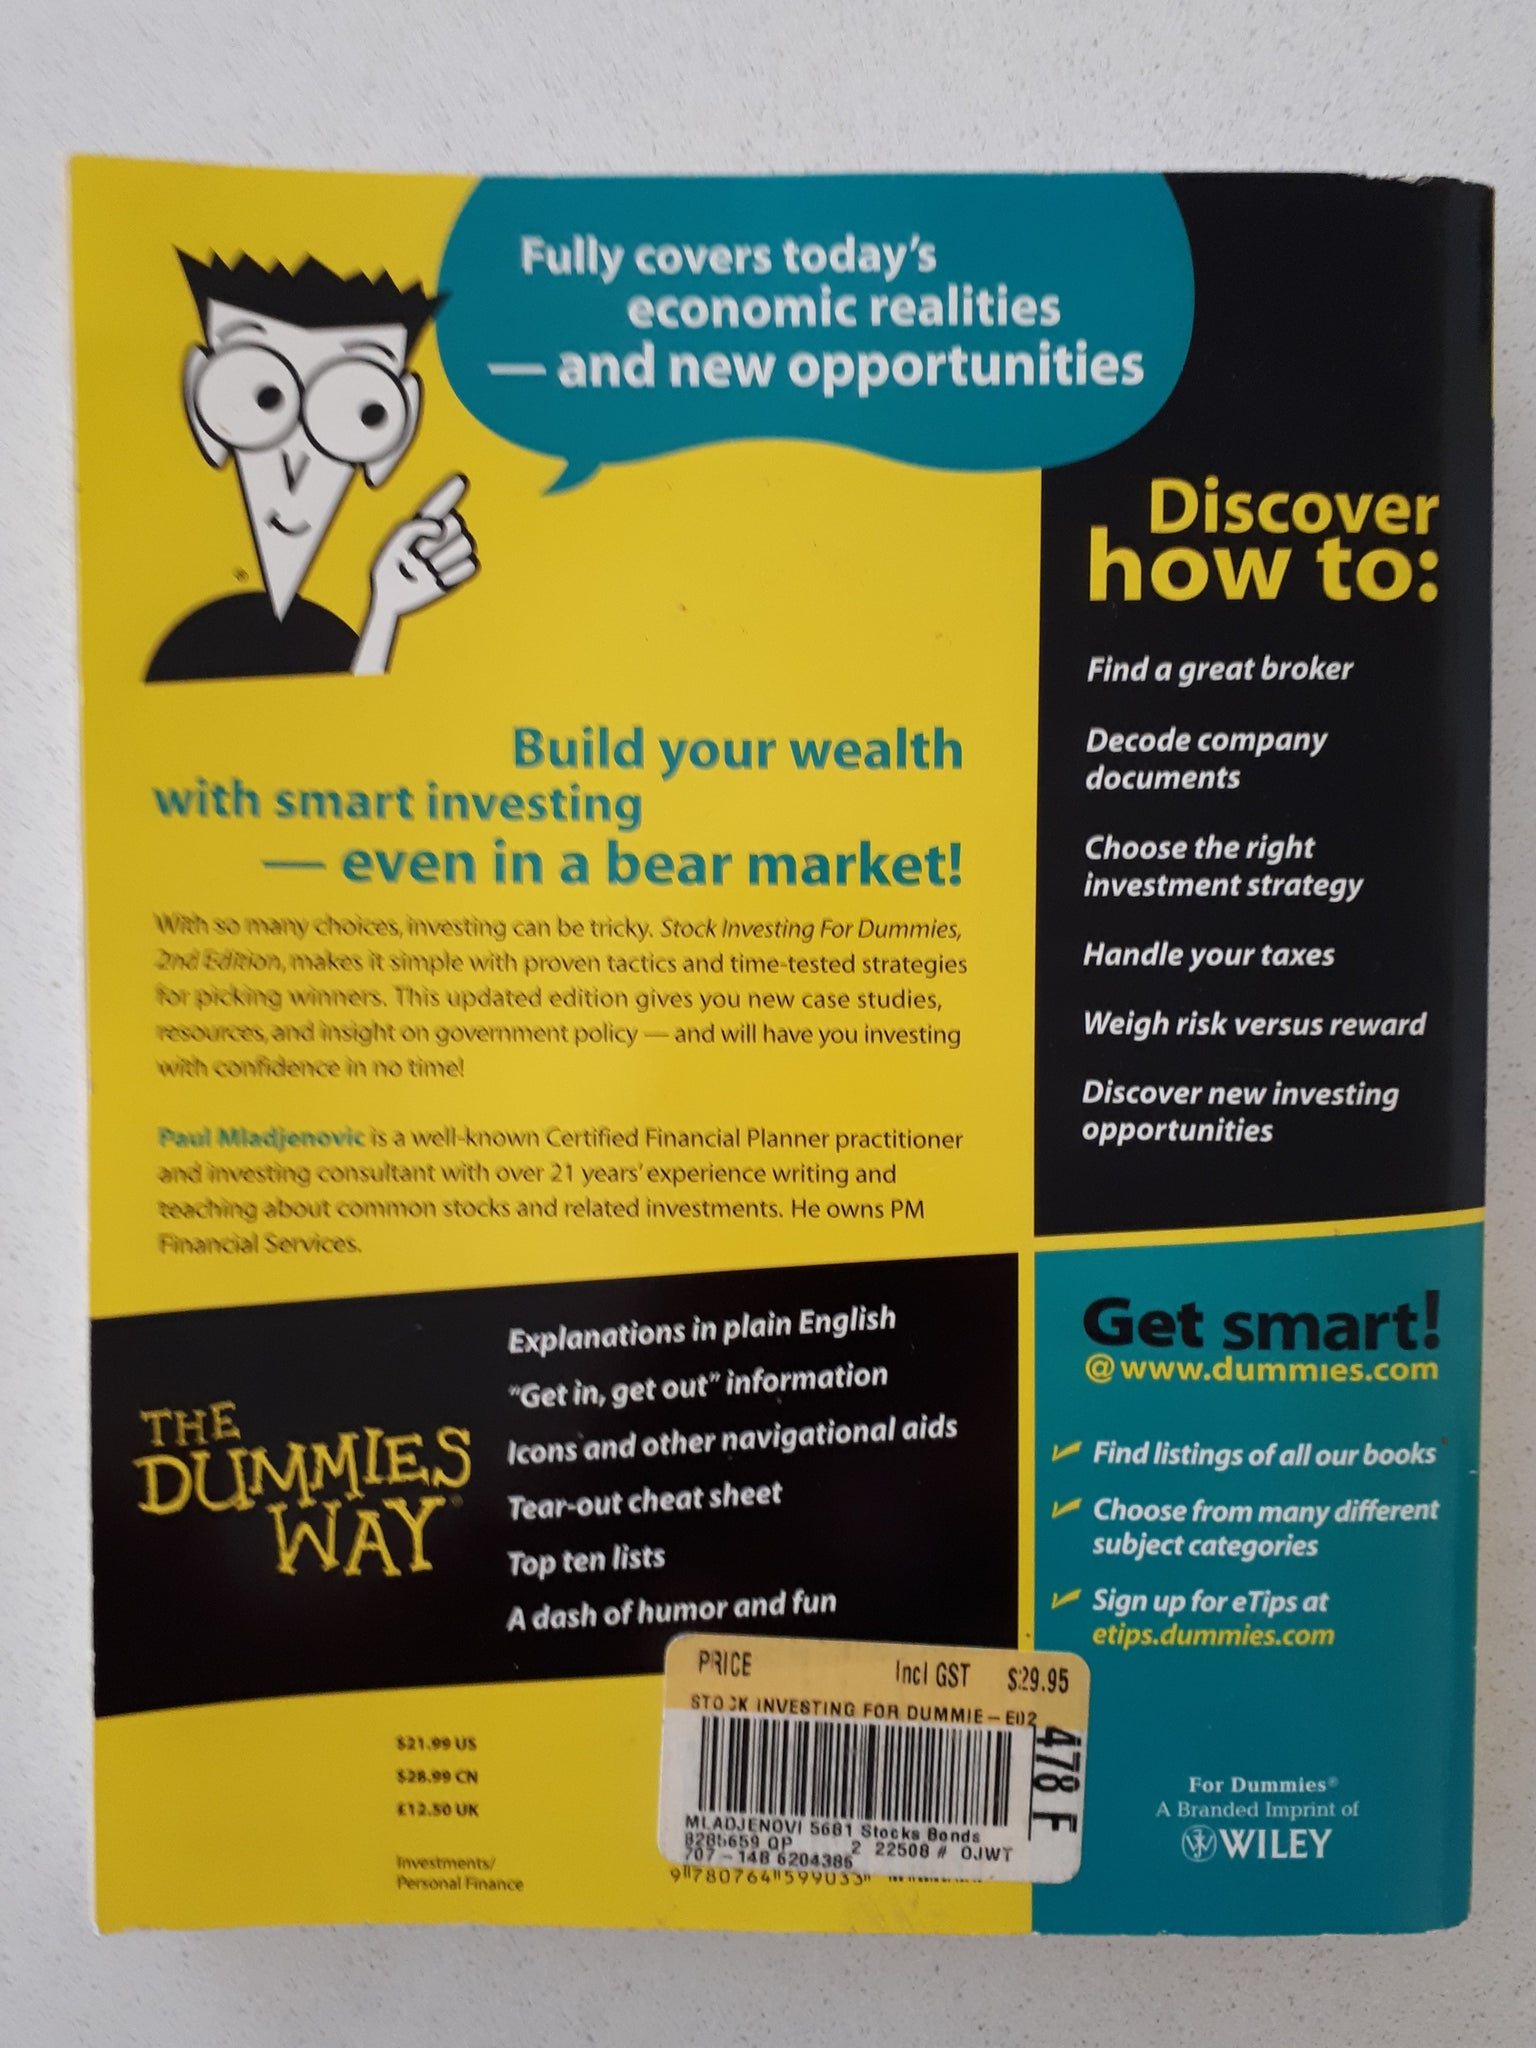 Vidulich investments for dummies emmalyn shaw oak investment partners